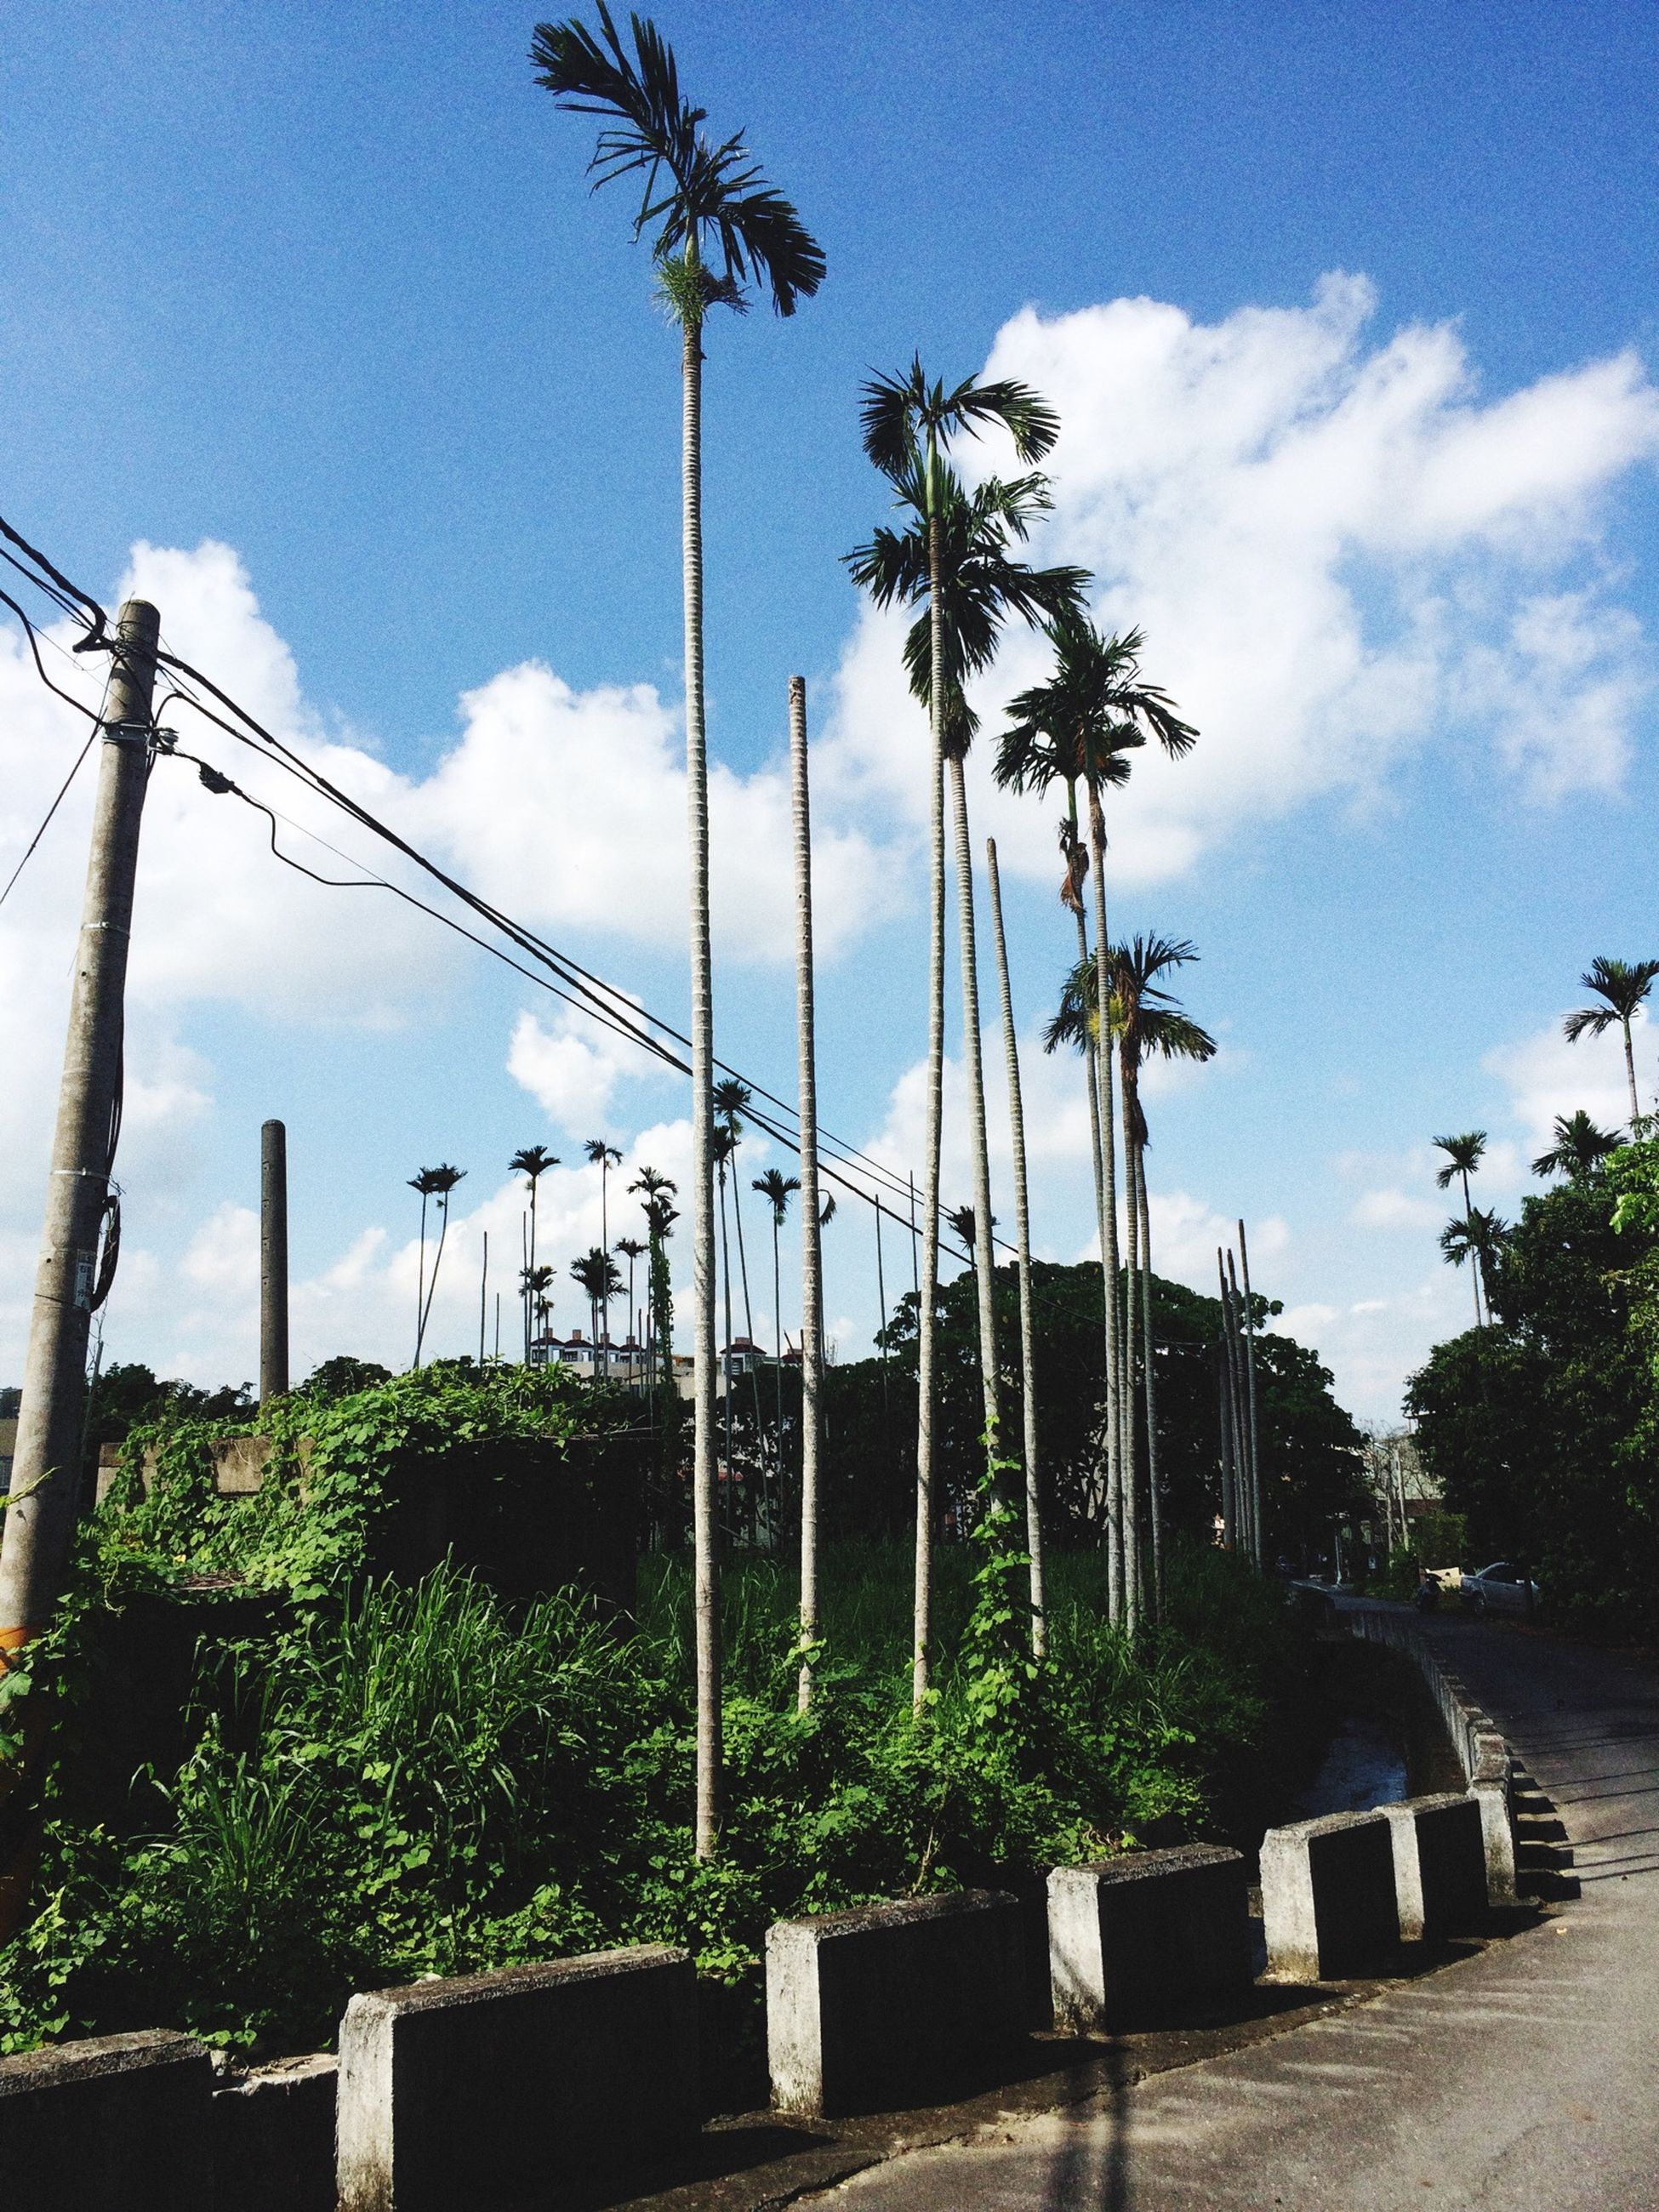 tree, sky, growth, palm tree, low angle view, street light, electricity pylon, road, power line, connection, cloud - sky, cloud, pole, plant, nature, sunlight, electricity, the way forward, no people, day